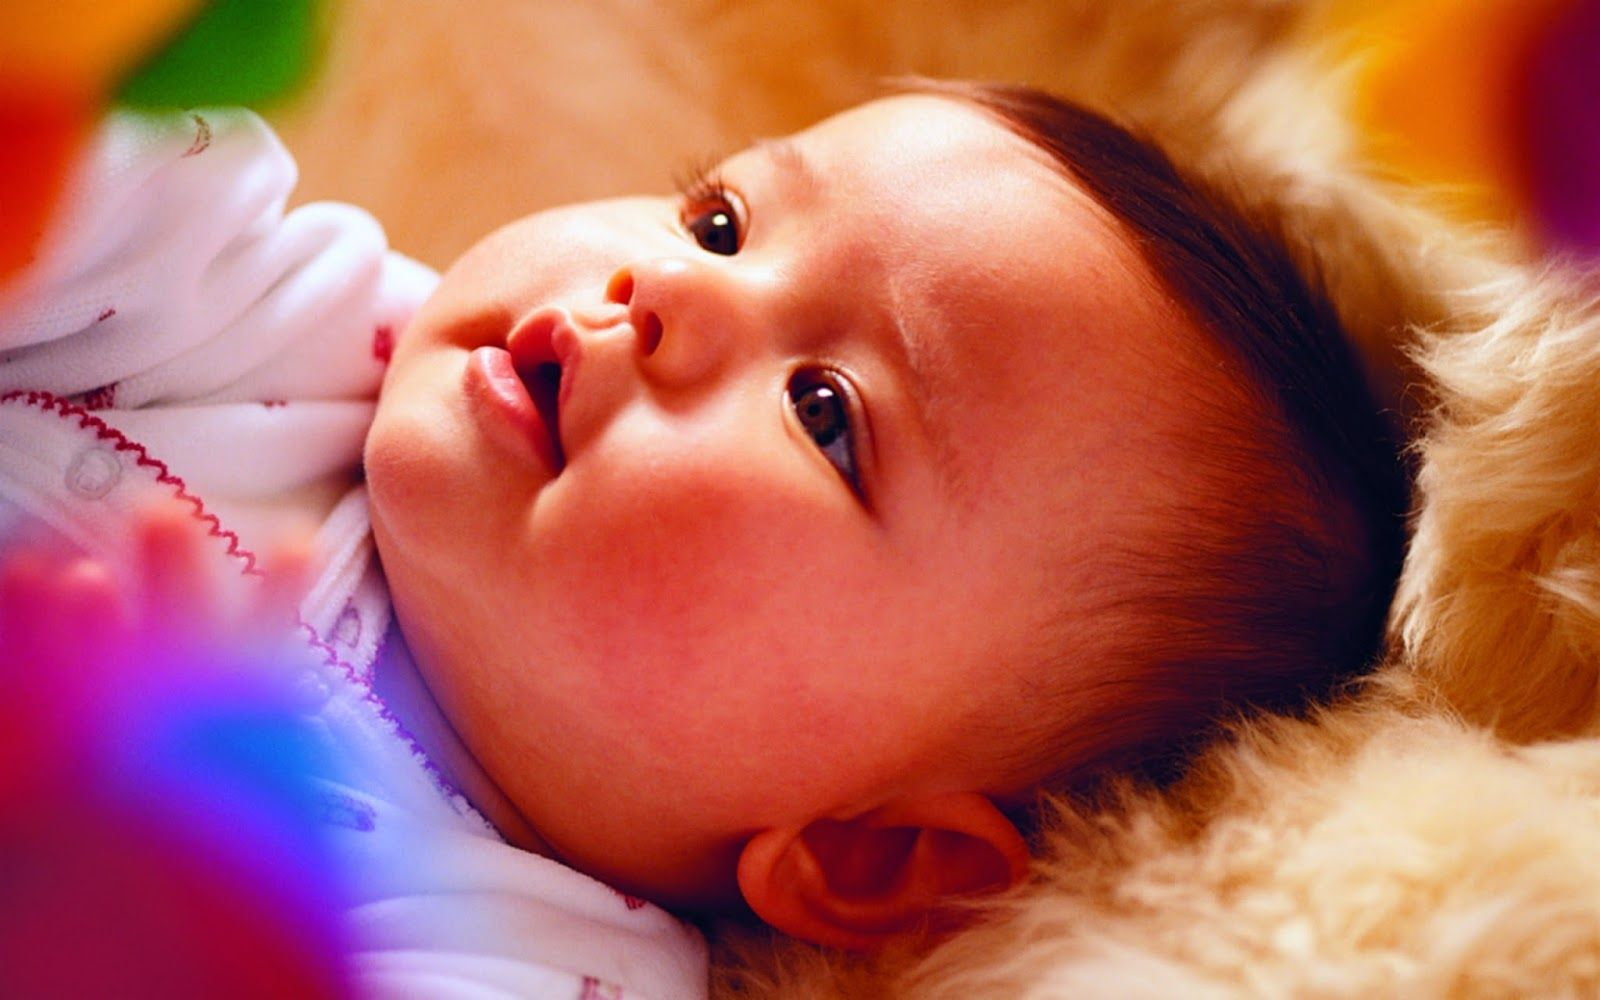 Cute Baby Hd Wallpapers 2015 Cute Babies Wallpapers For Home Cute Baby Wallpaper Baby Wallpaper Hd Cute Baby Pictures